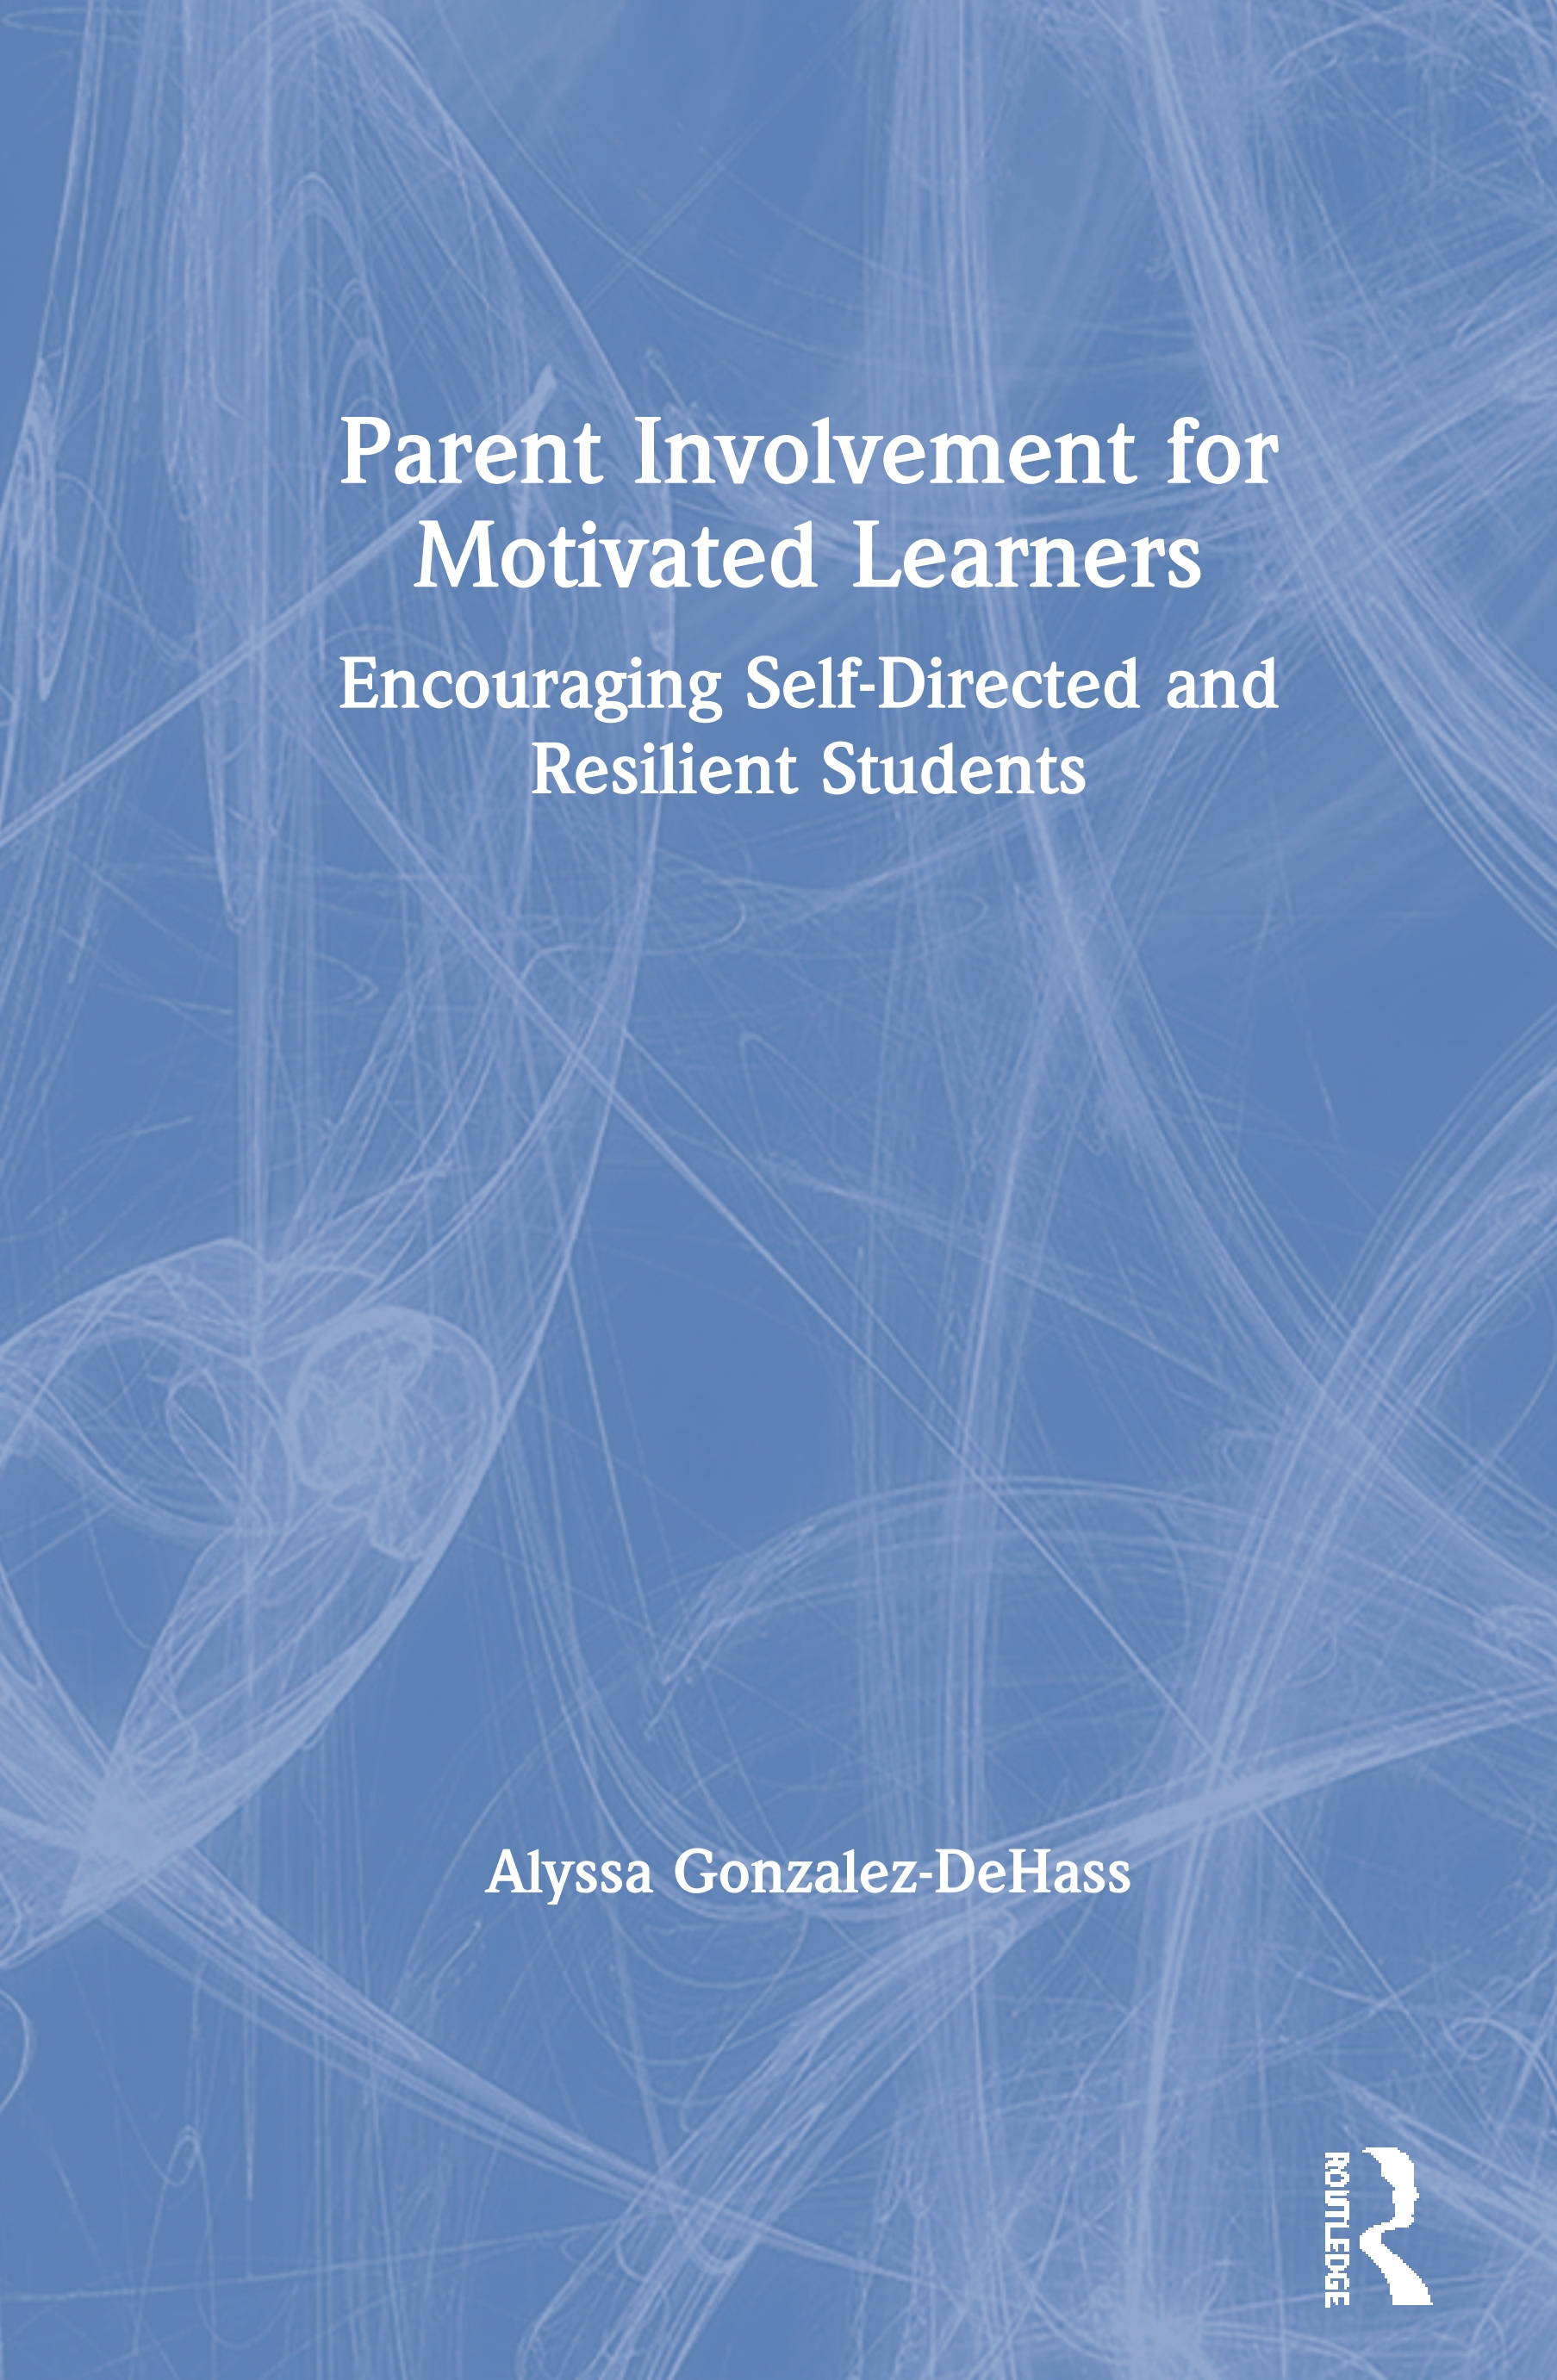 Parent Involvement for Motivated Learners: Research on School-Family Partnerships book cover